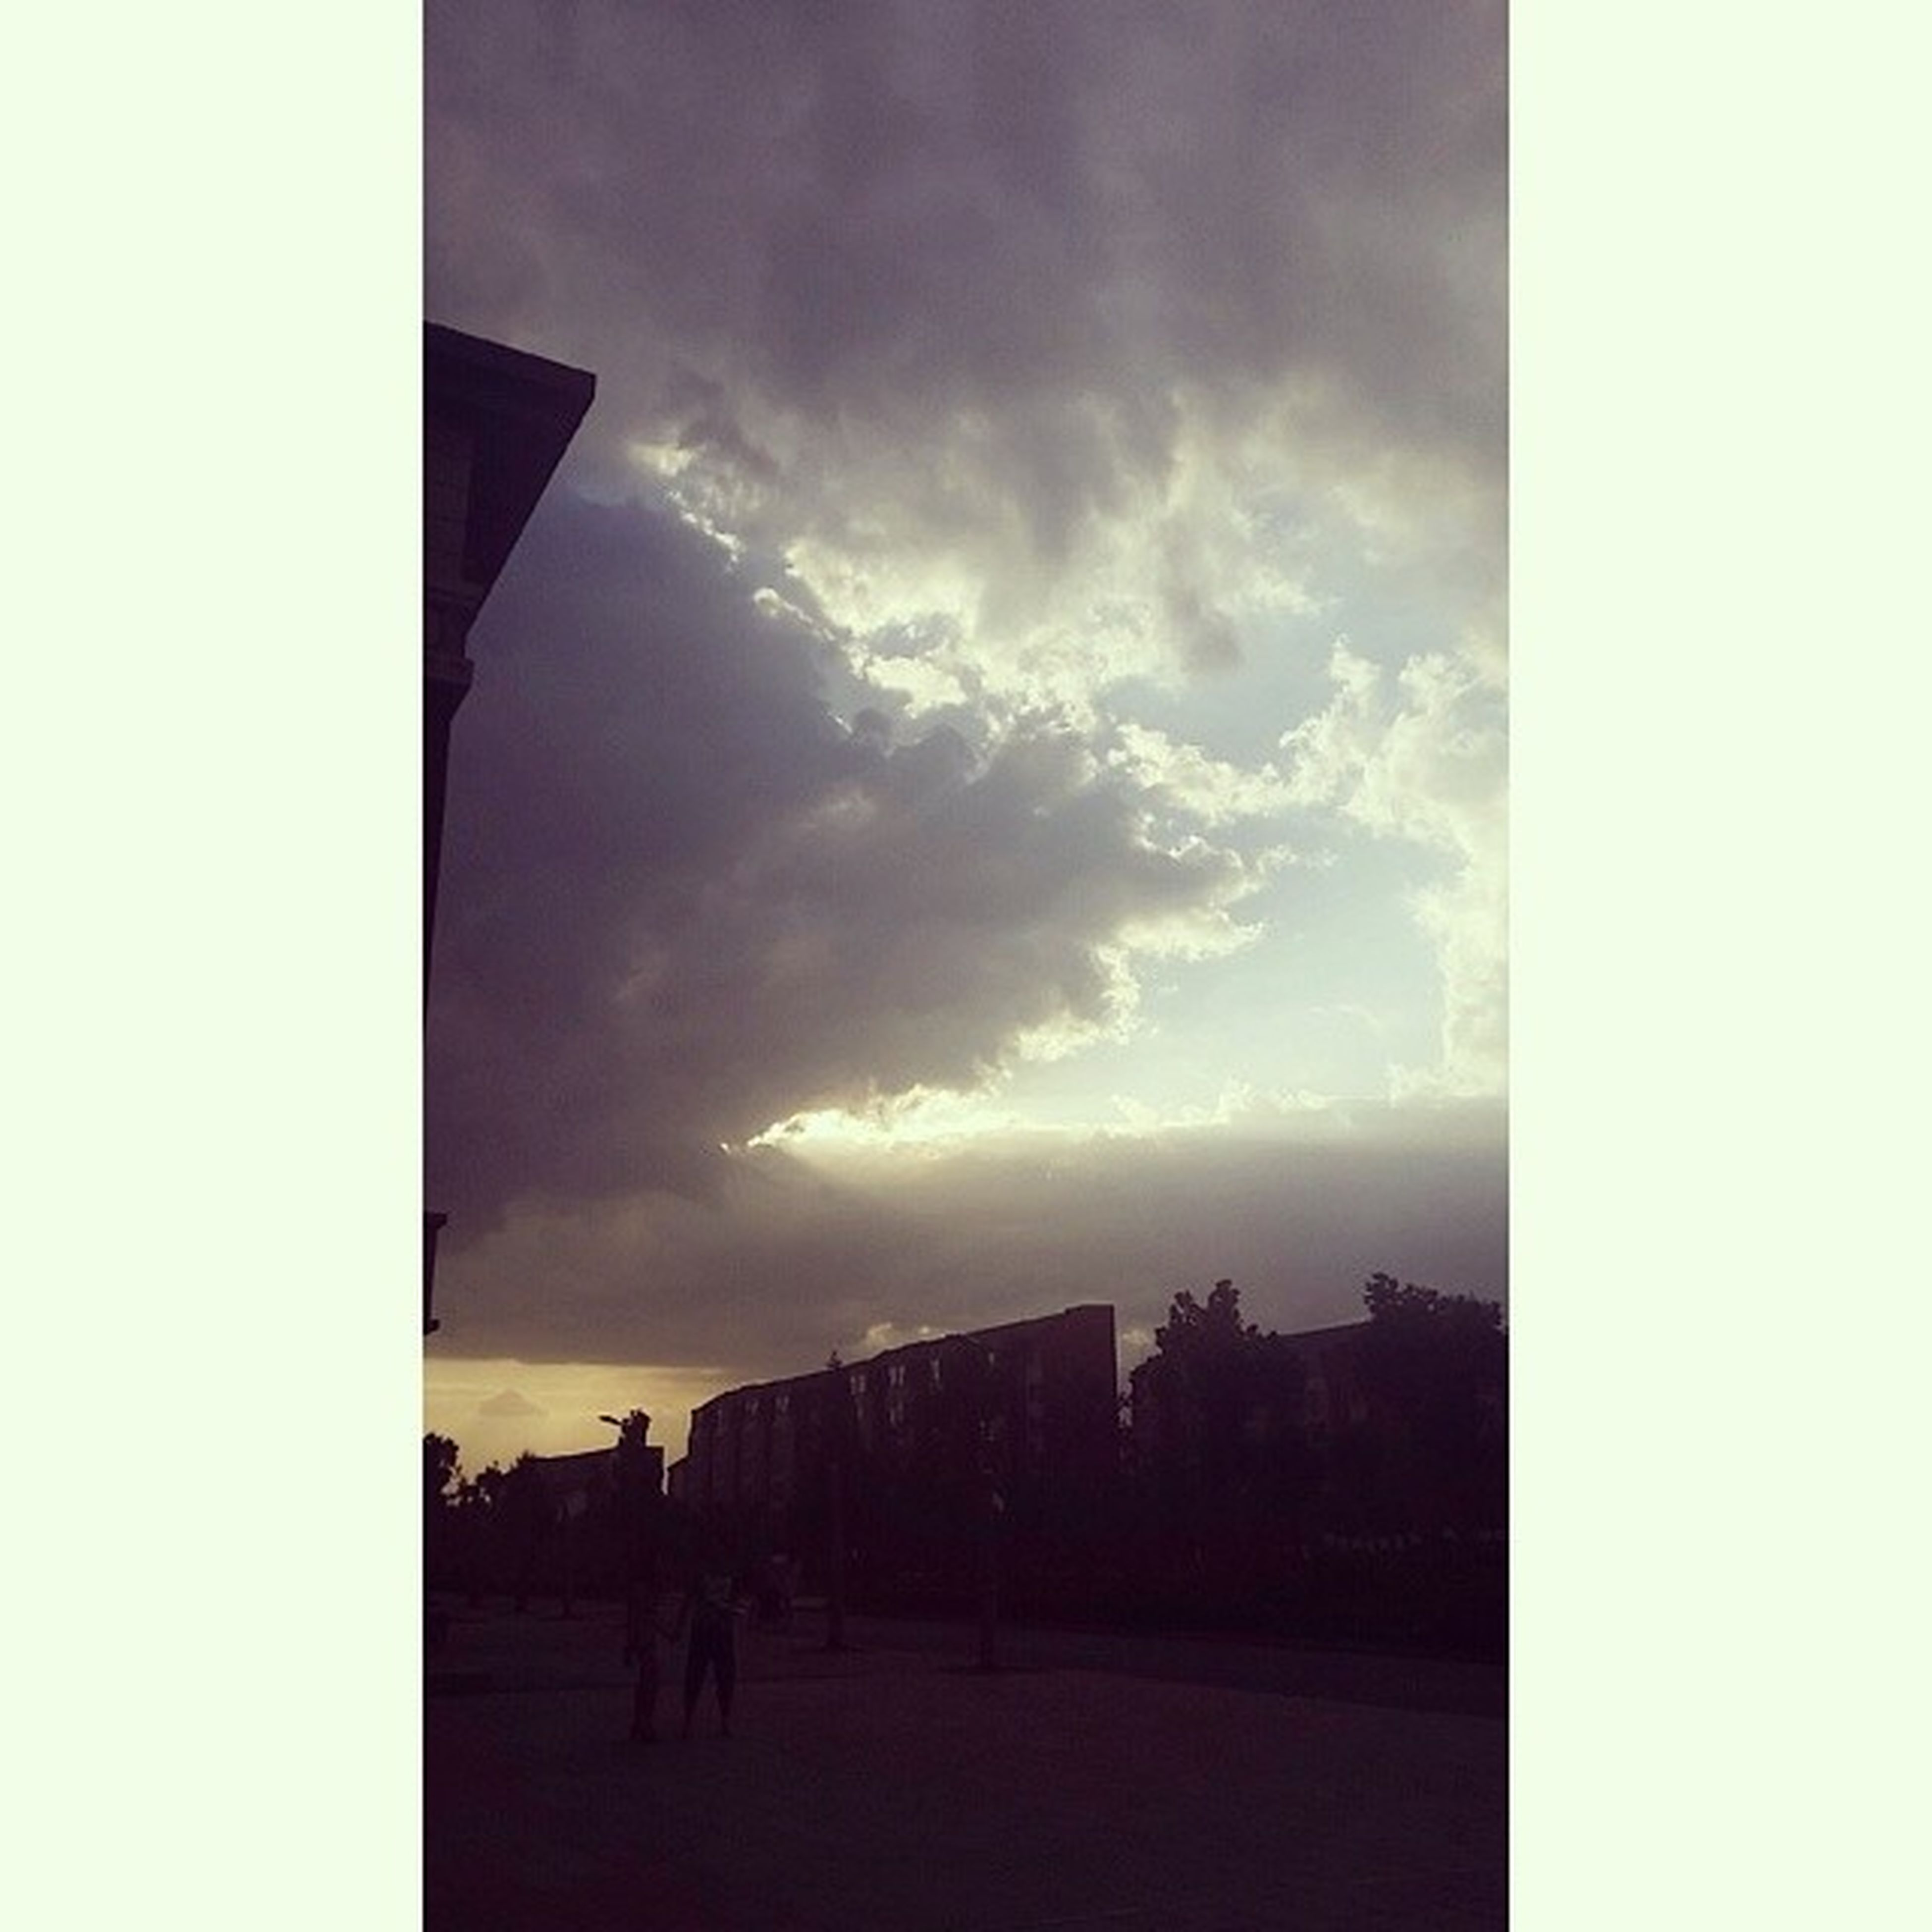 sky, cloud - sky, transfer print, cloudy, auto post production filter, built structure, lifestyles, men, silhouette, architecture, cloud, building exterior, leisure activity, weather, person, nature, large group of people, city, scenics